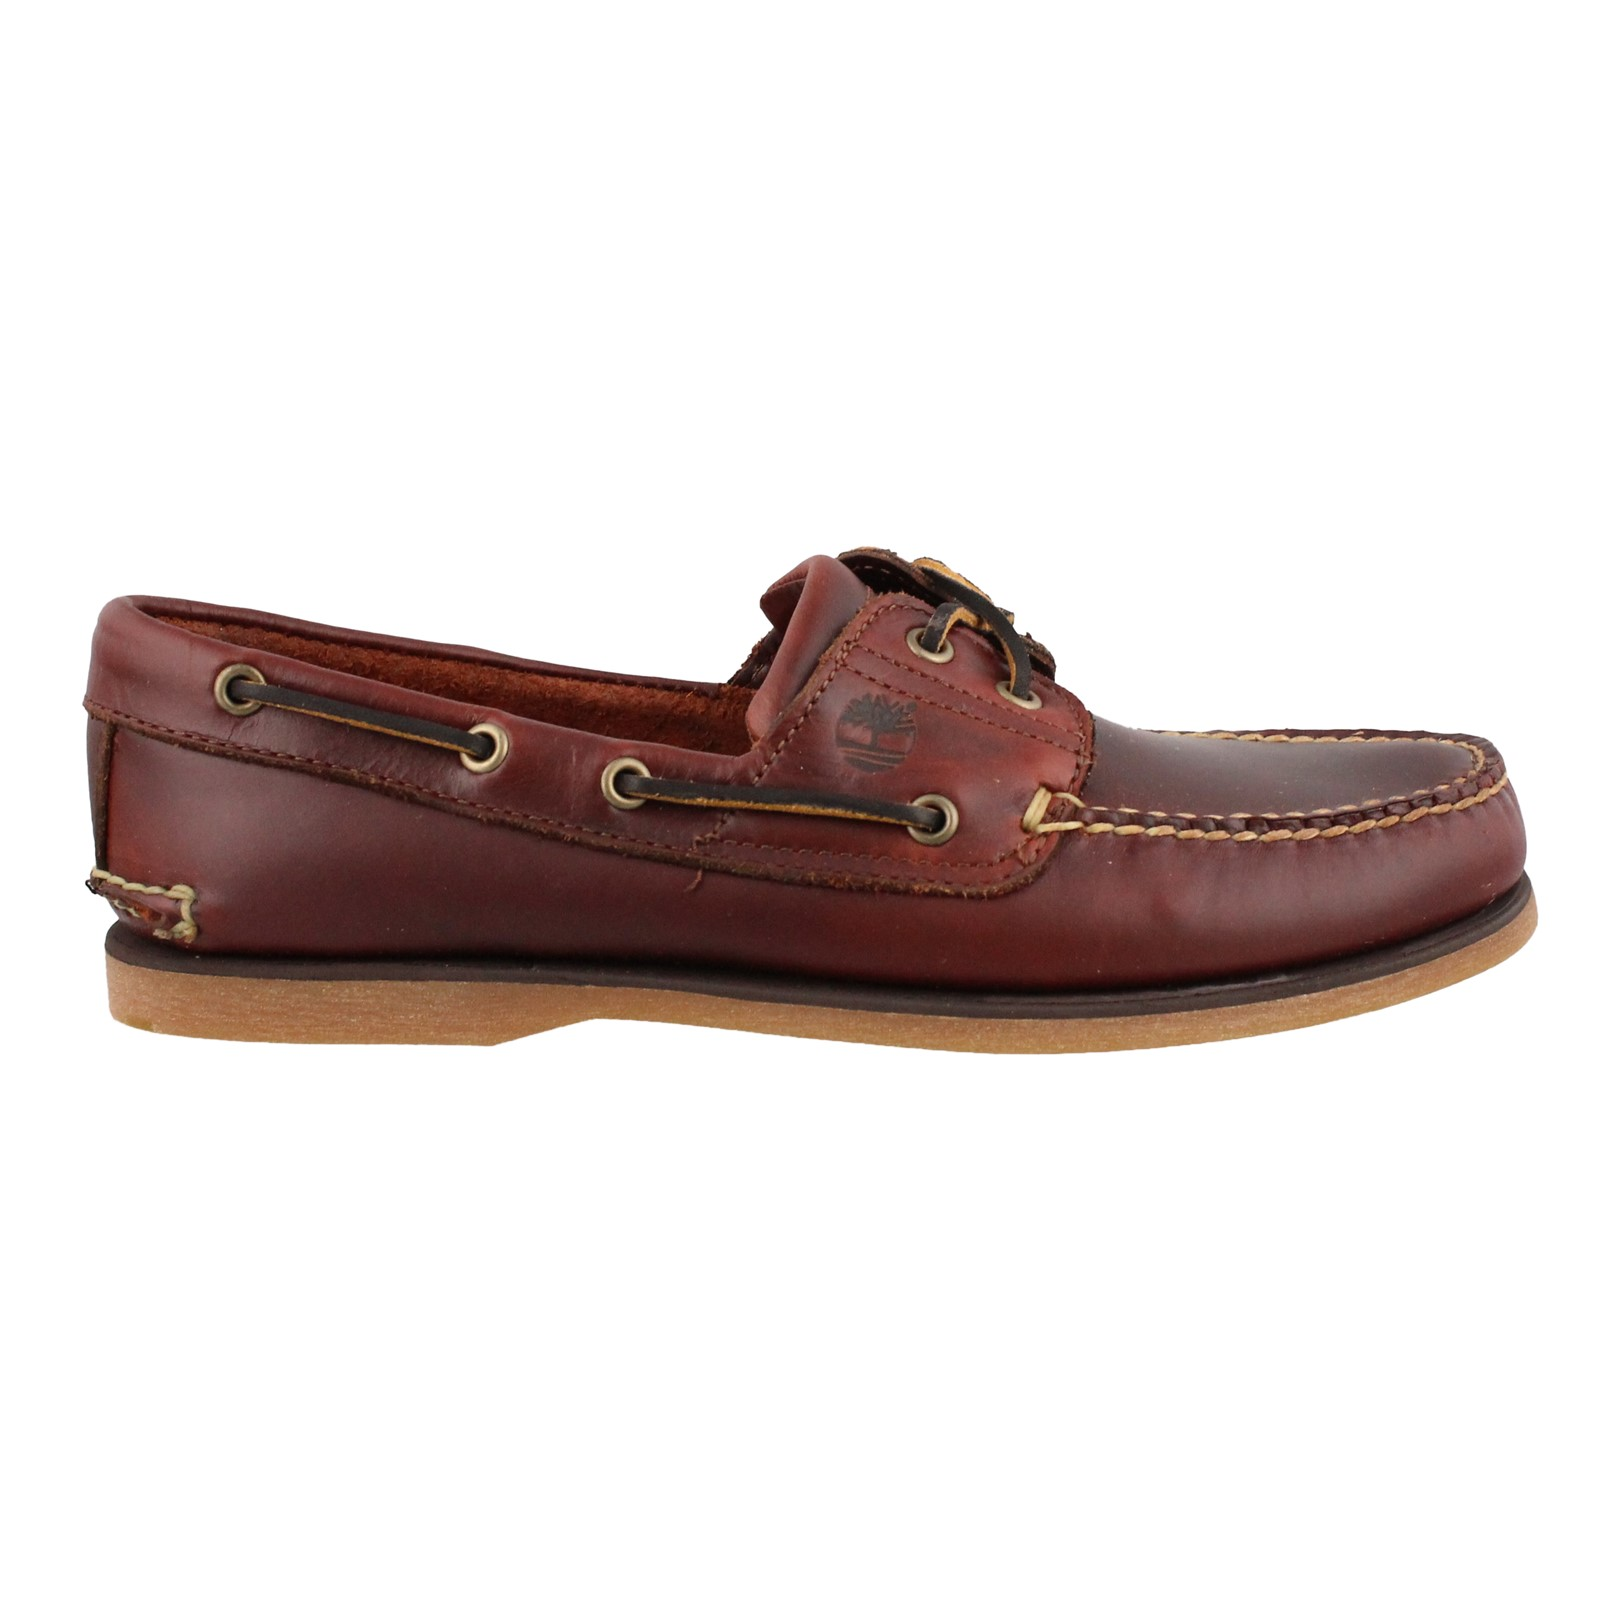 Men's Timberland, Icon Classic 2 Eye Boat Shoe